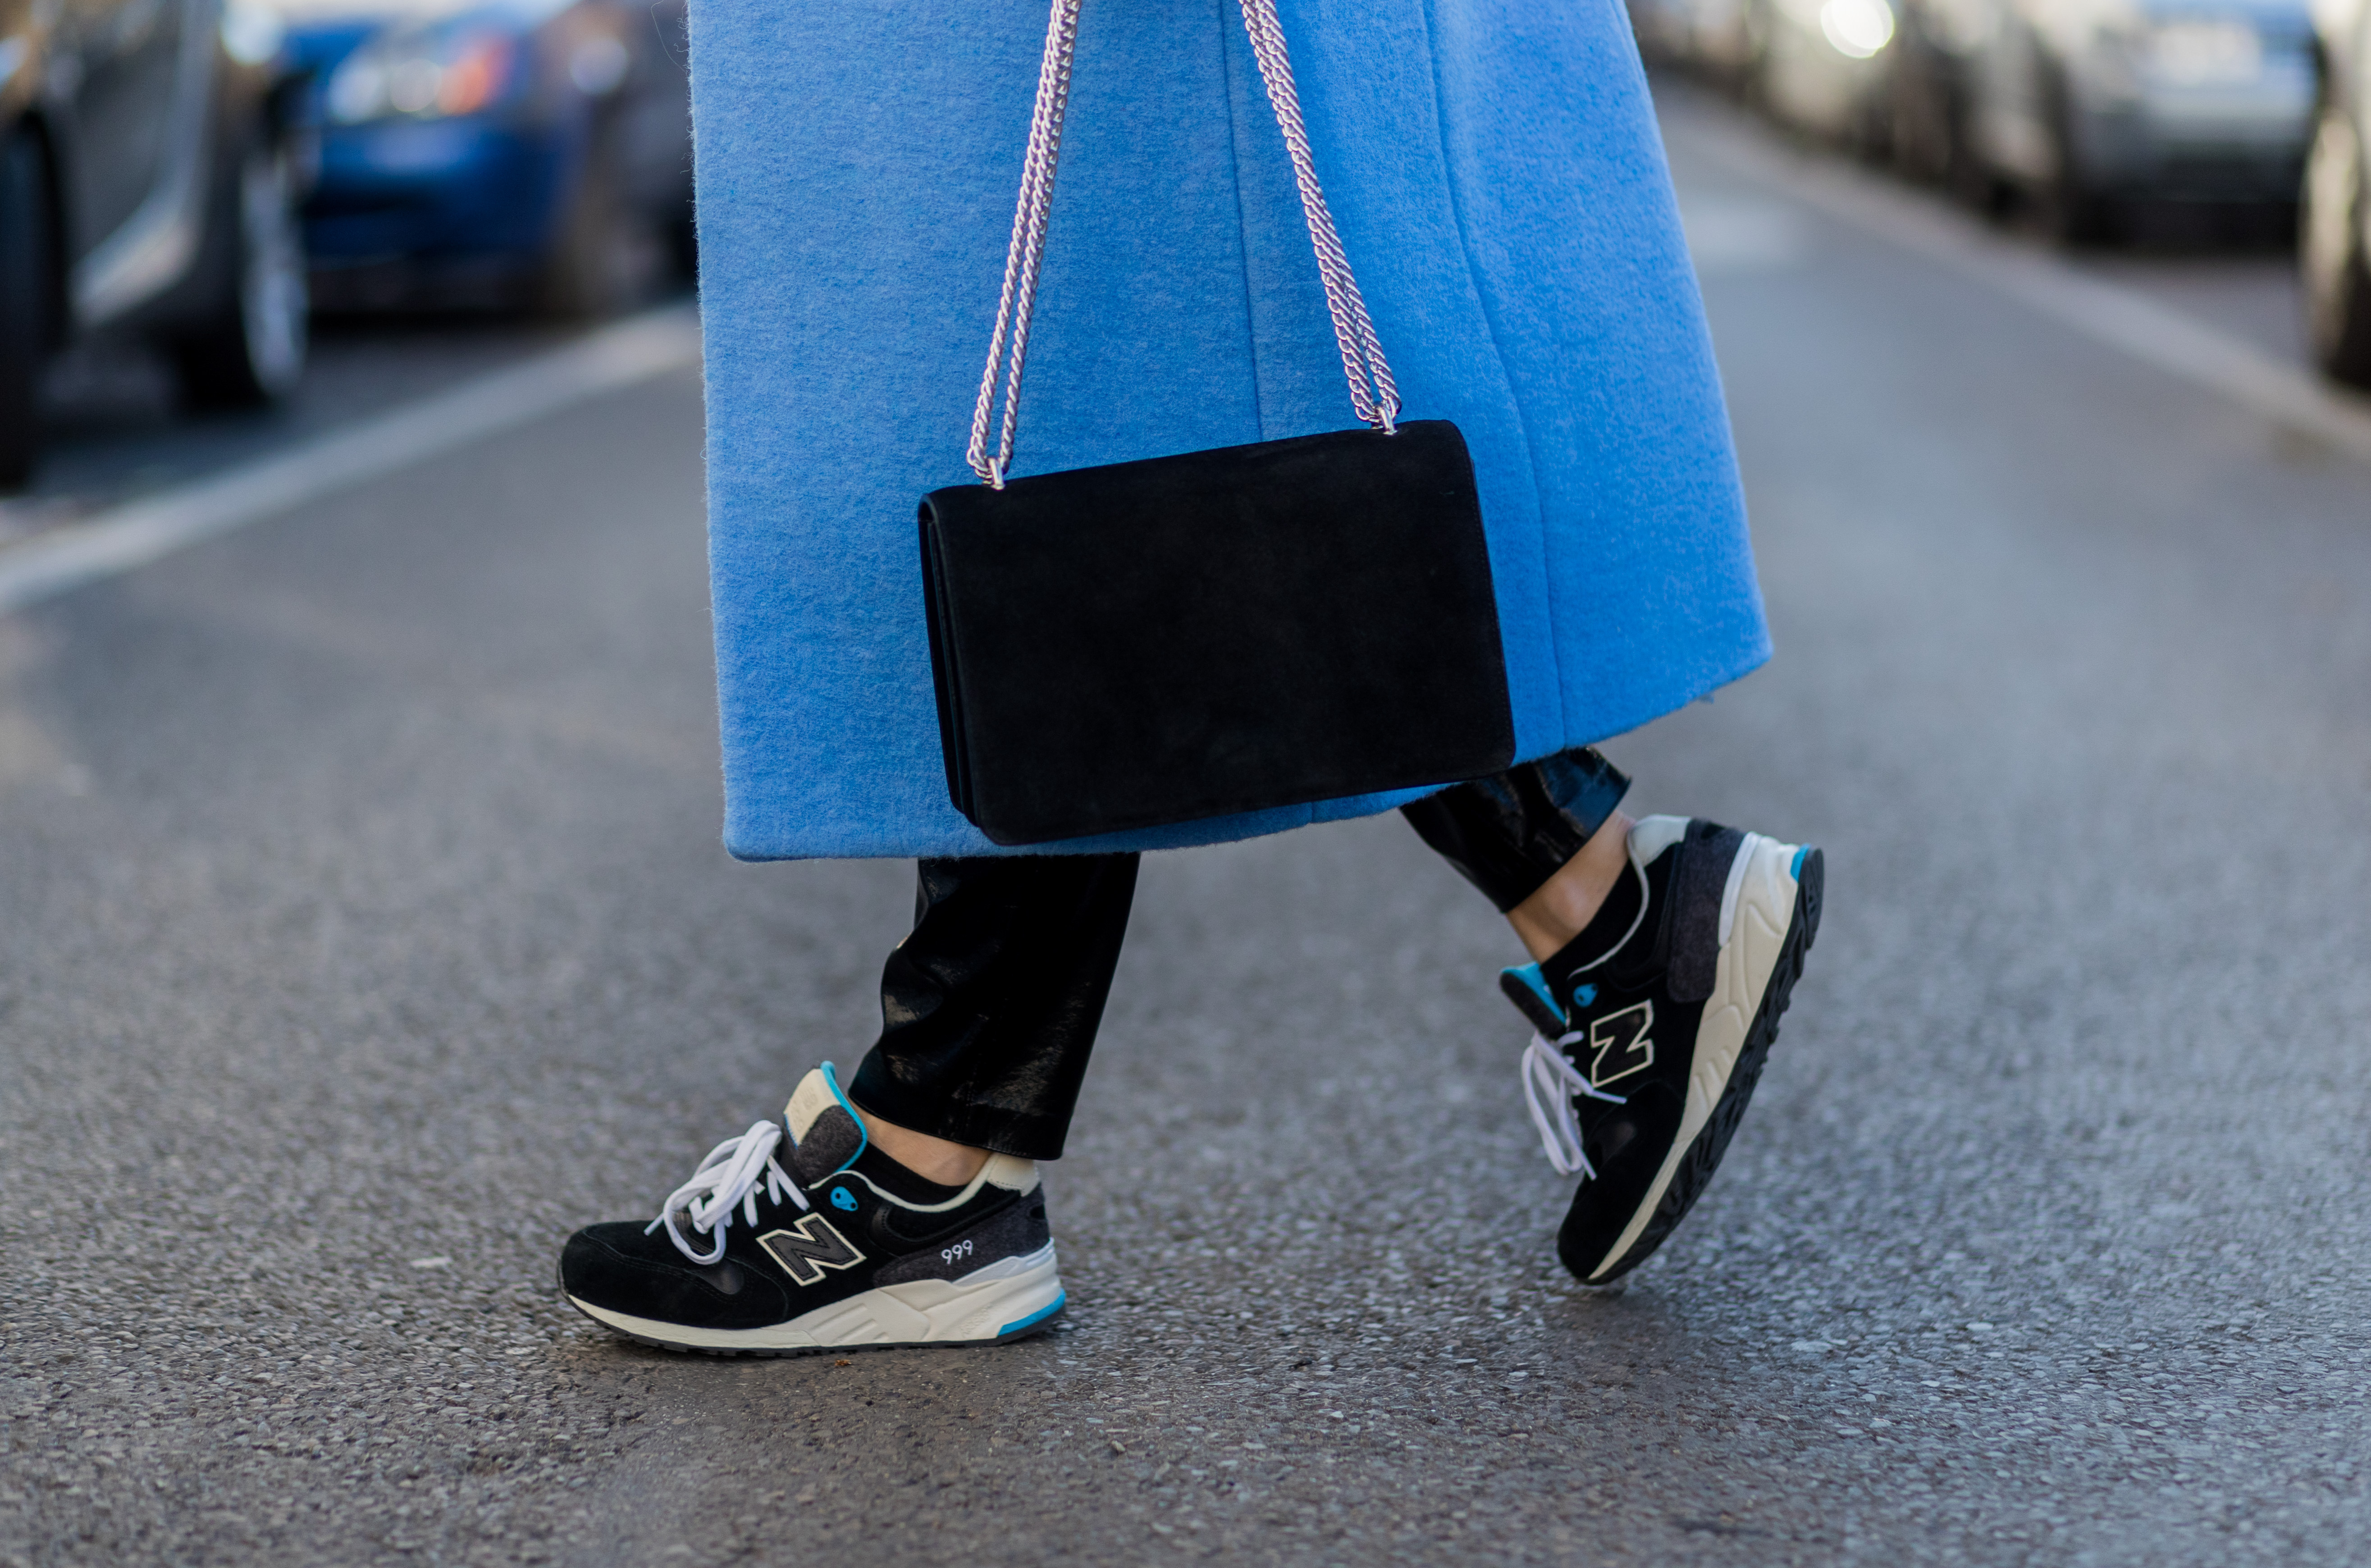 The 20 Most Comfortable Sneakers You Can Walk All Day In, According to Customer Reviews